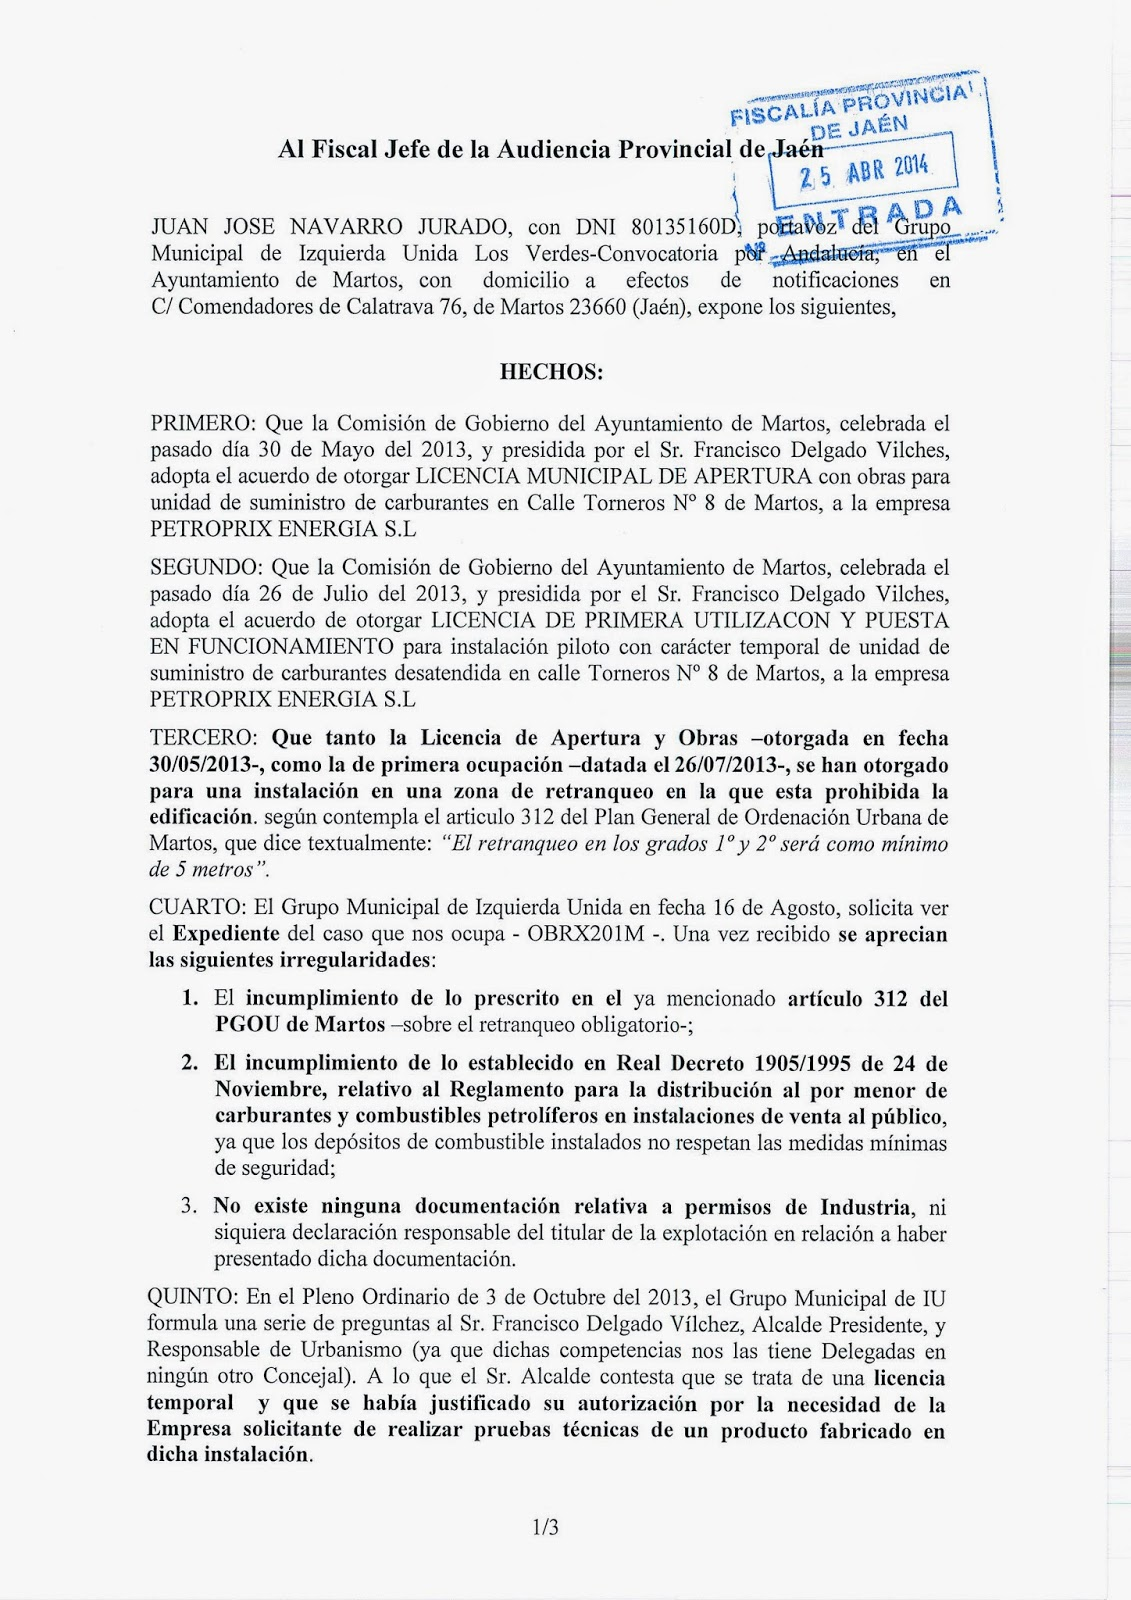 https://sites.google.com/site/izquierdaunidamartos/documentos/denuncia%20fiscalia%2025-04-2014.pdf?attredirects=0&d=1